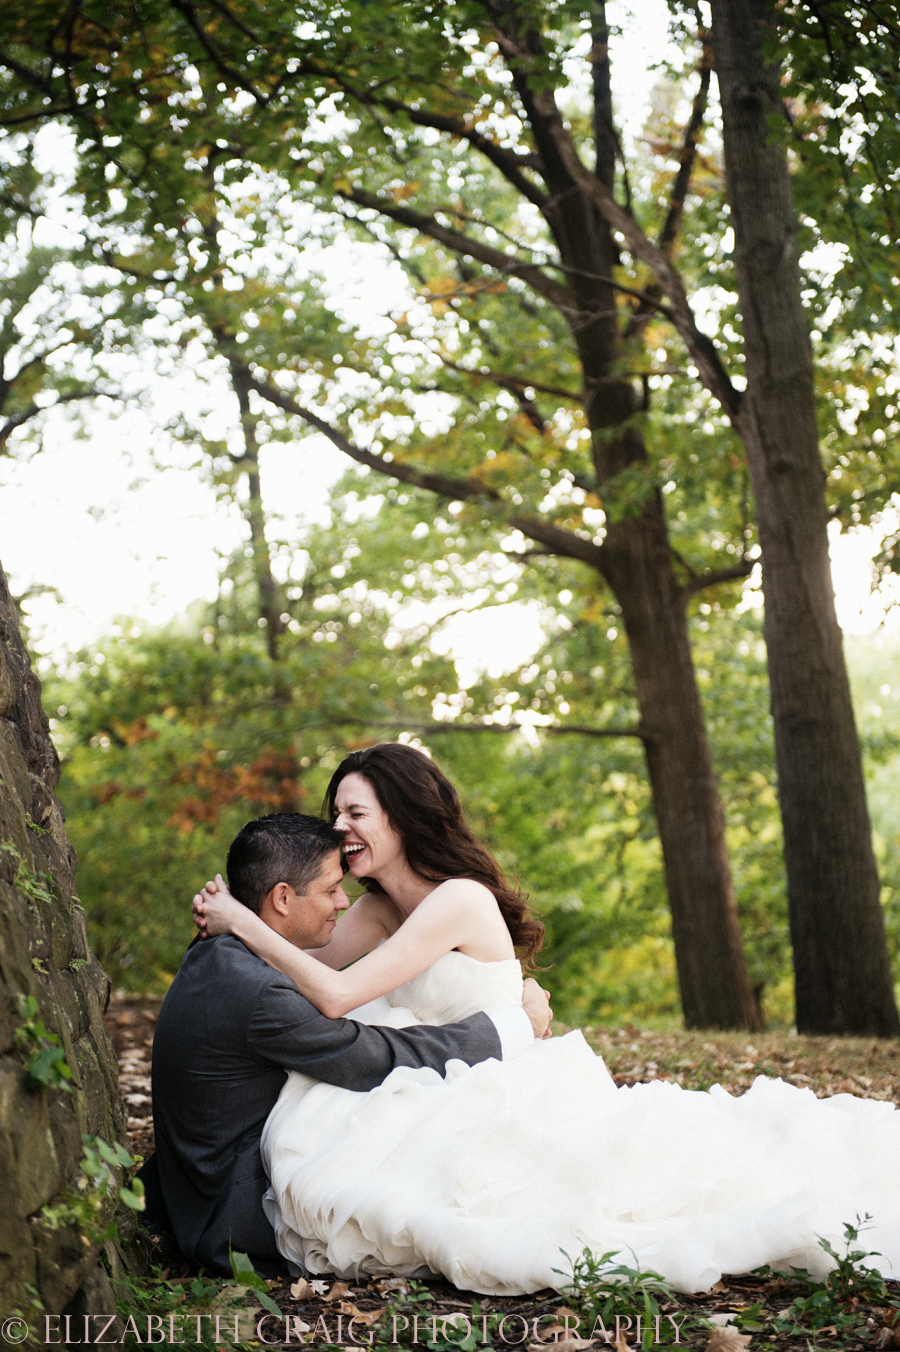 Romantic Wedding Photos | Elizabeth Craig Photography-011